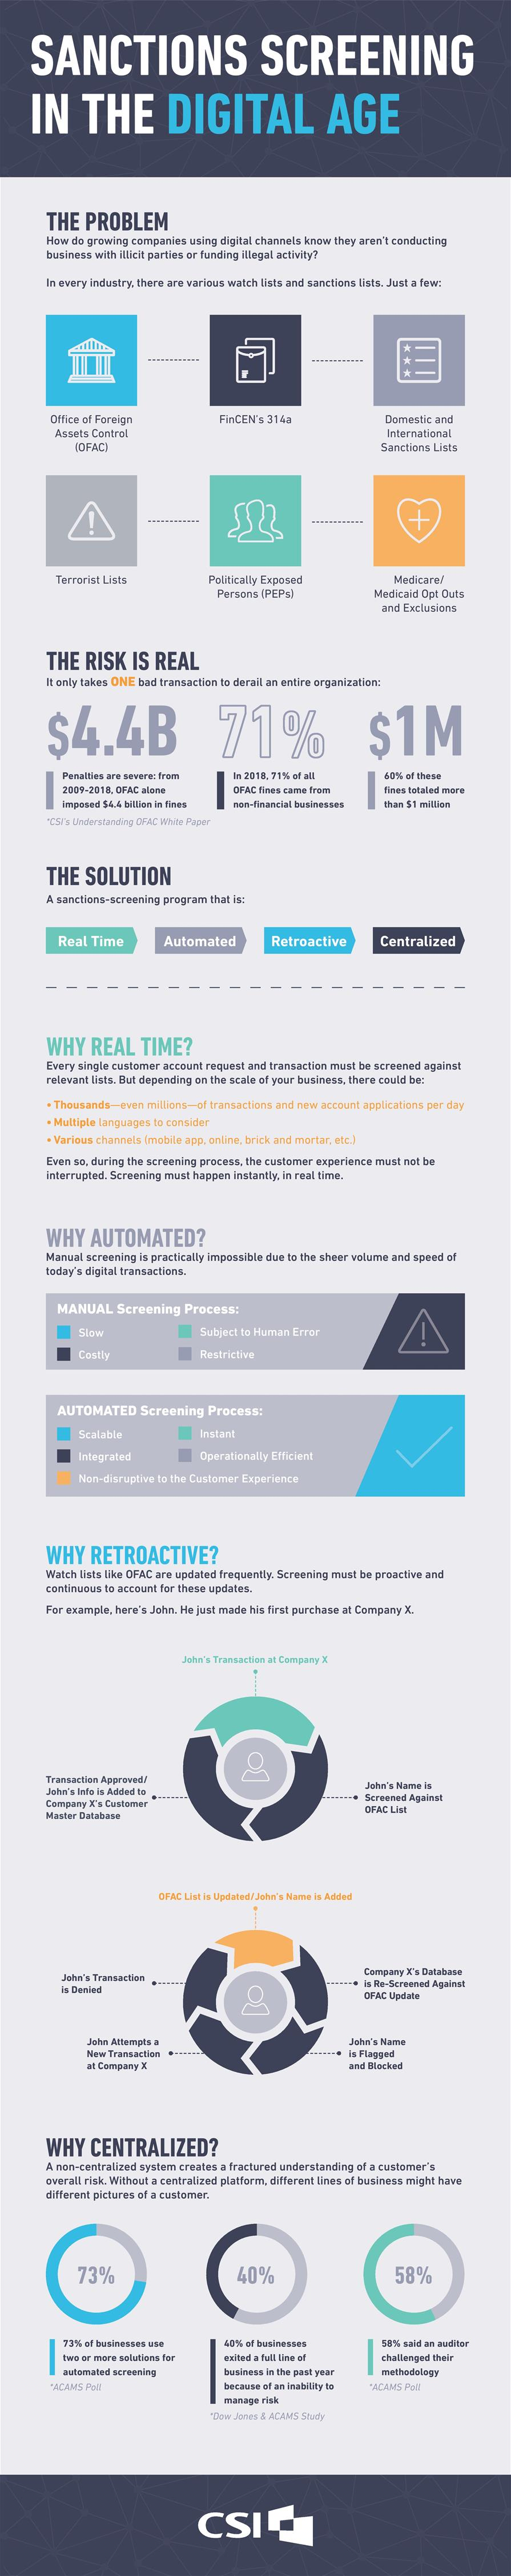 Infographic: Sanctions Screening in the Digital Age